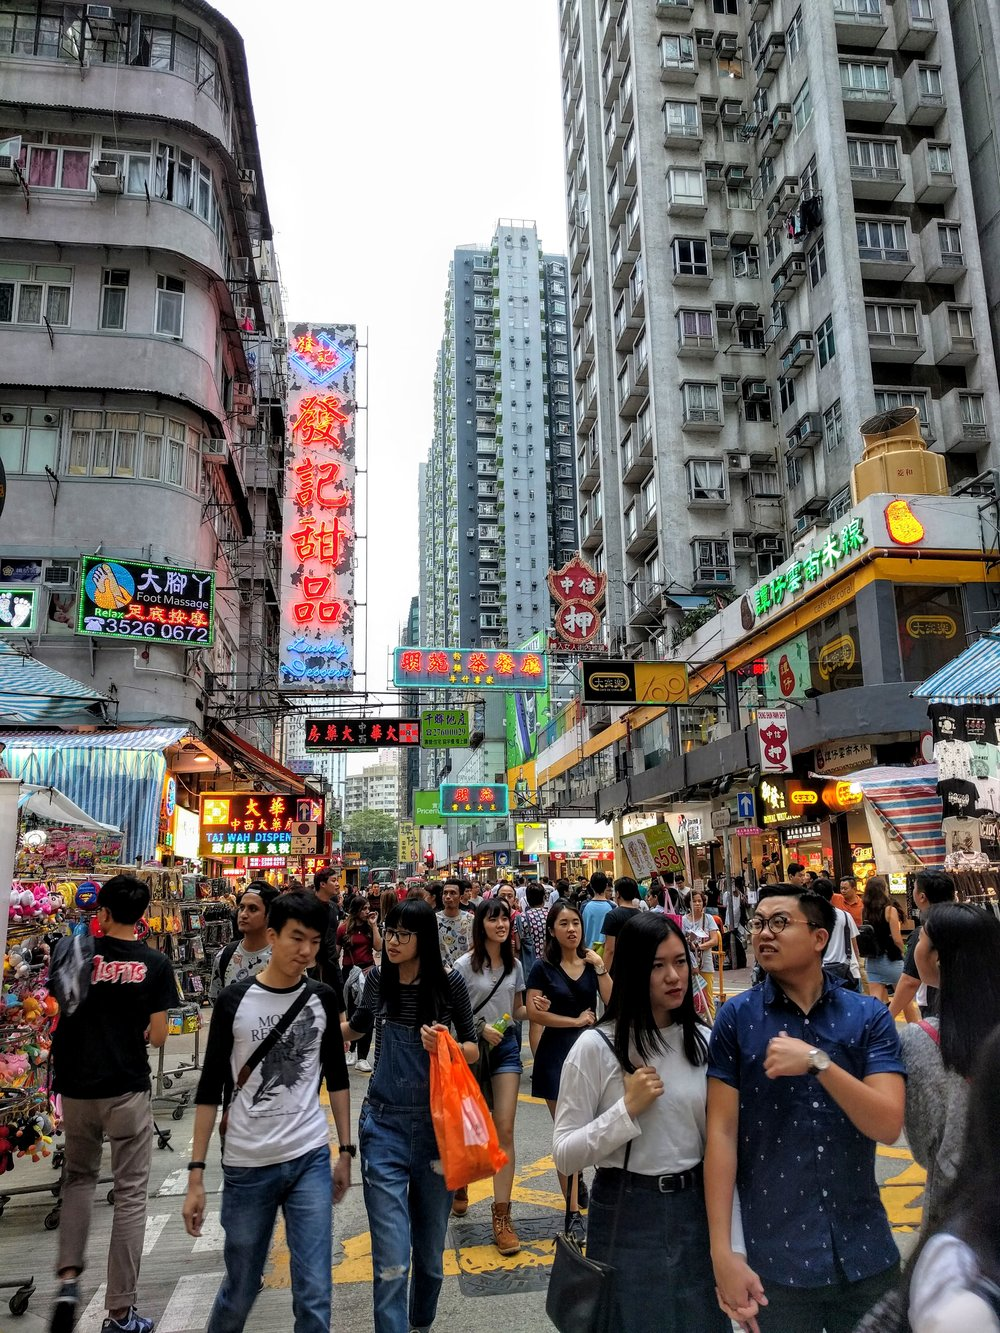 Enjoying the people watching in the crowded Mong Kok shopping district // Hong Kong